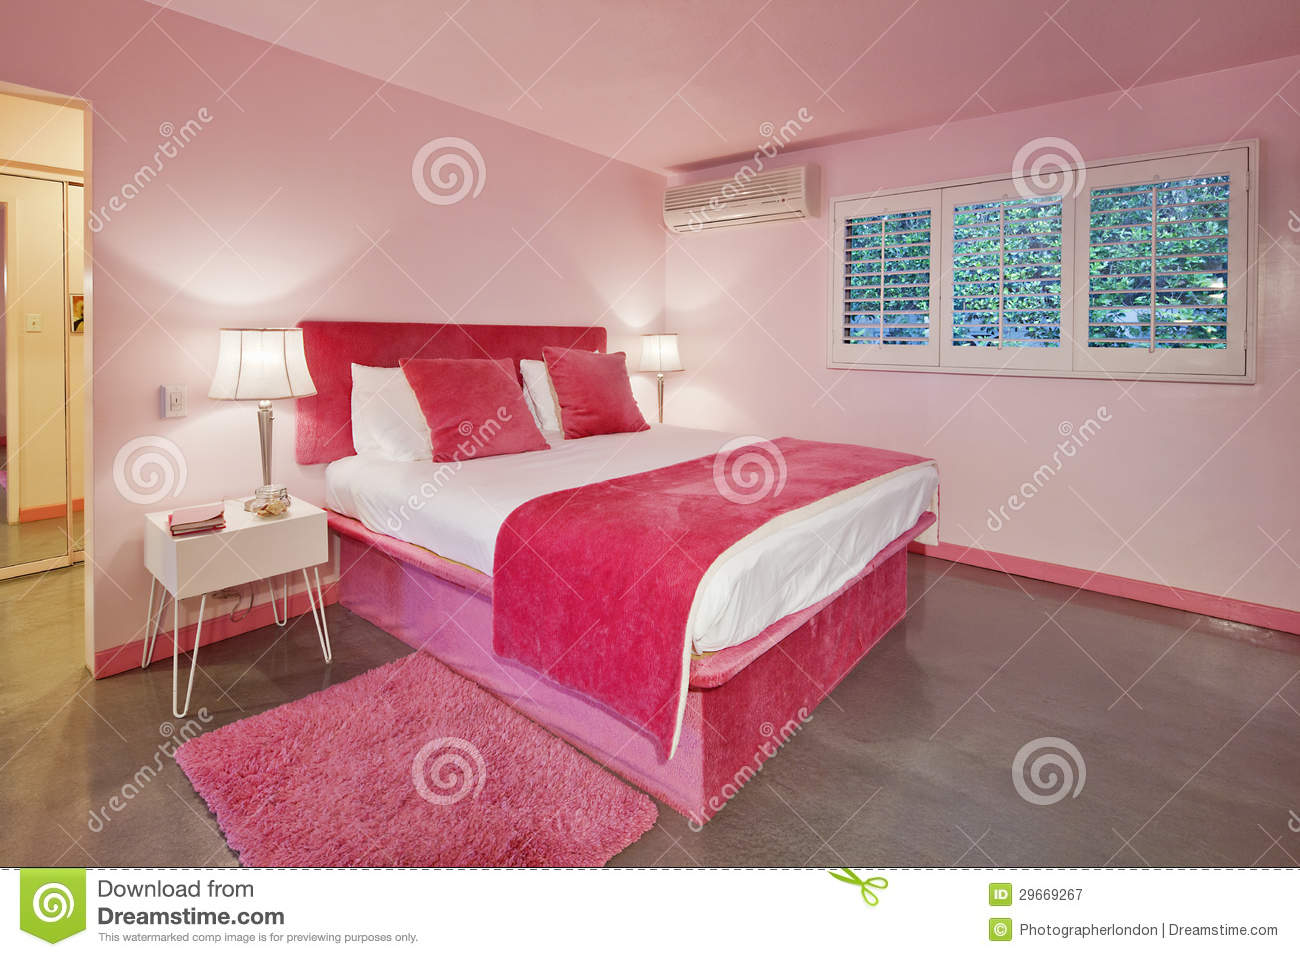 Bedroom Design Interior Pink